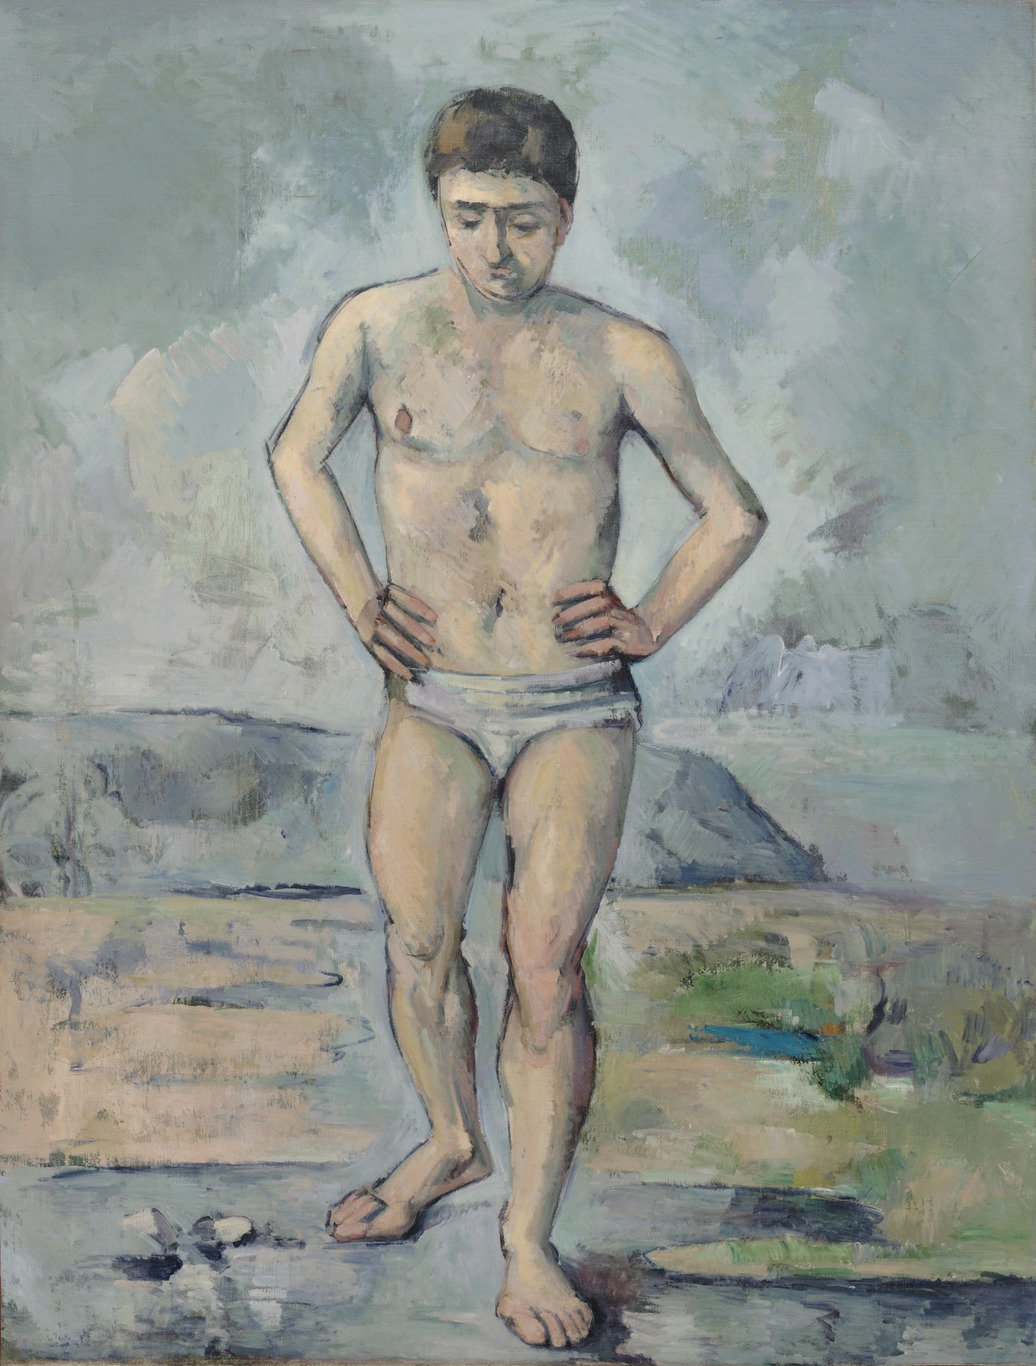 Fig. 6 Paul Cézanne, The Bather, 1885-1886, oil on canvas, 127 x 96.8 cm (Museum of Modern Art, New York).